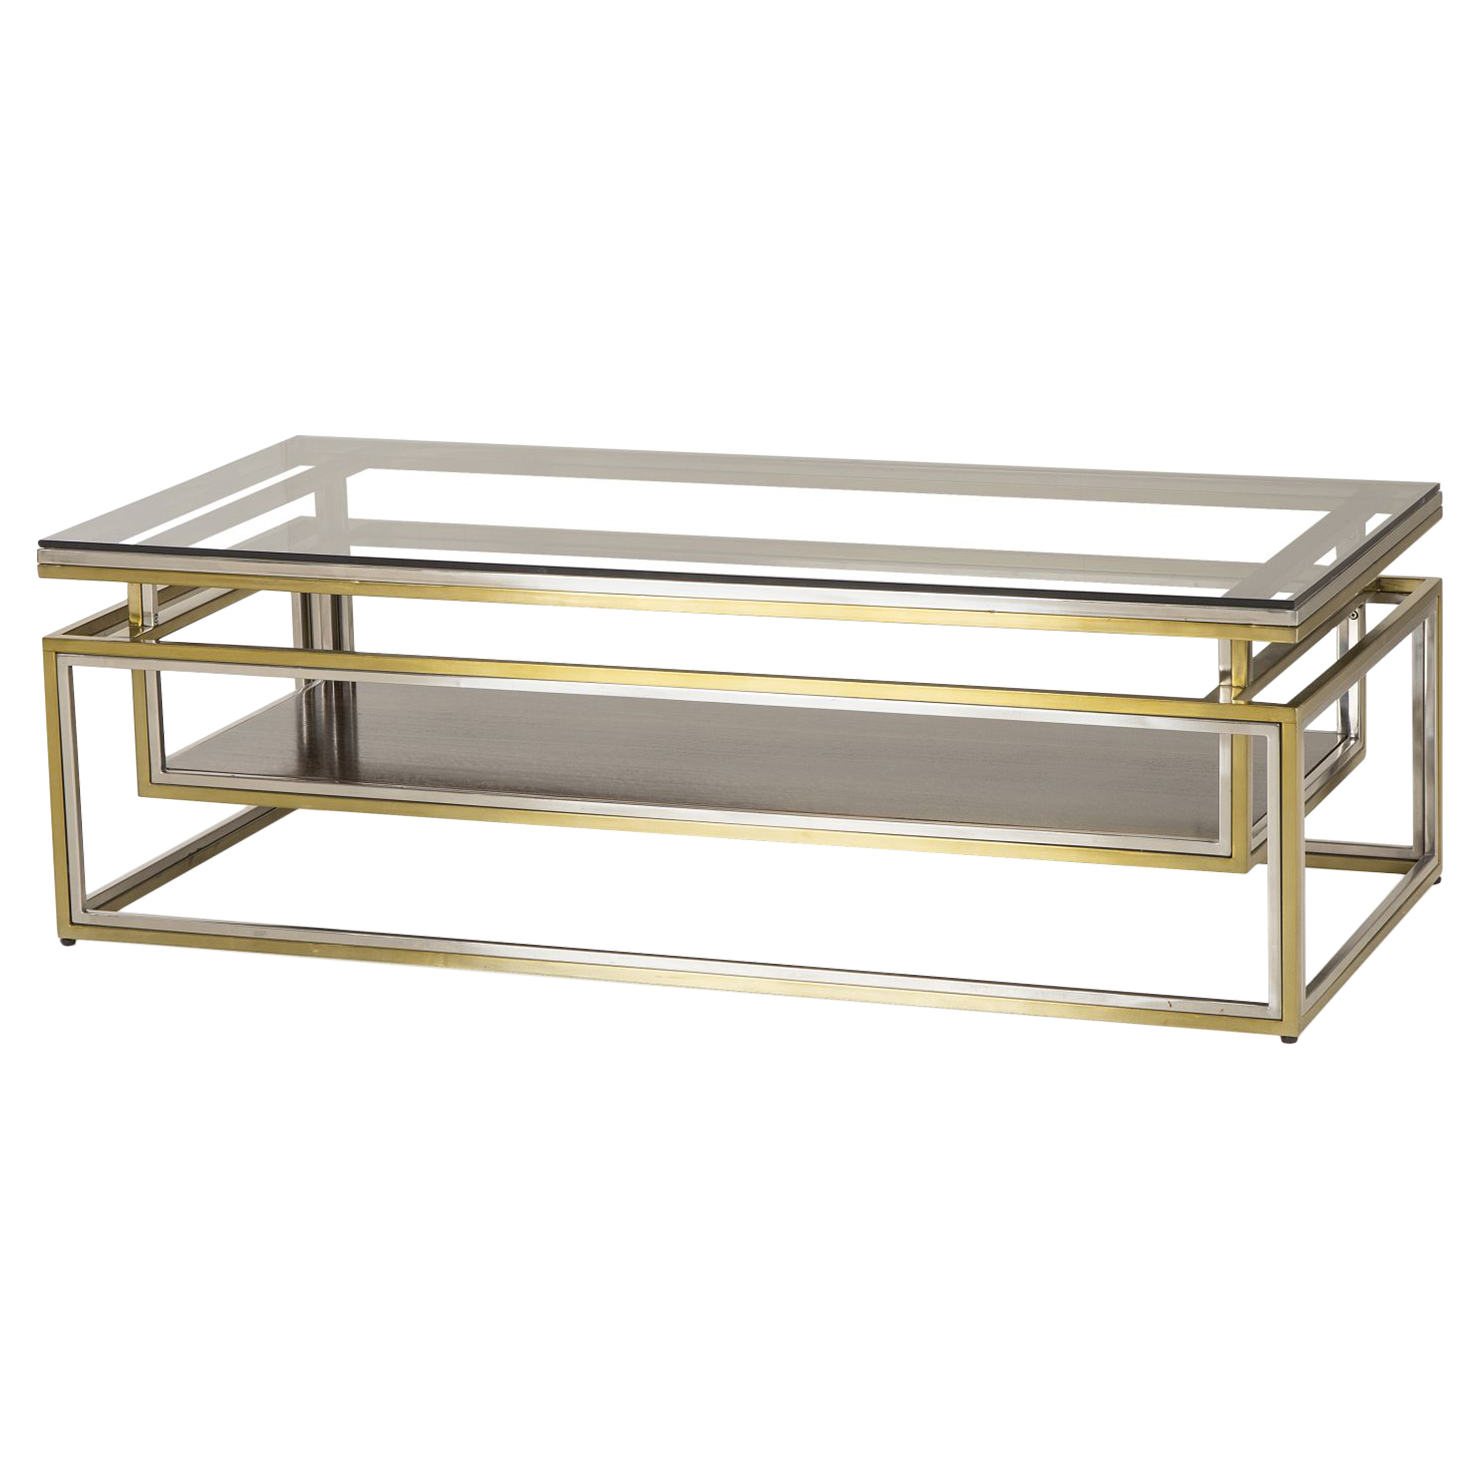 Barden Loft Modern Drop Shelf Steel Brass Coffee Table